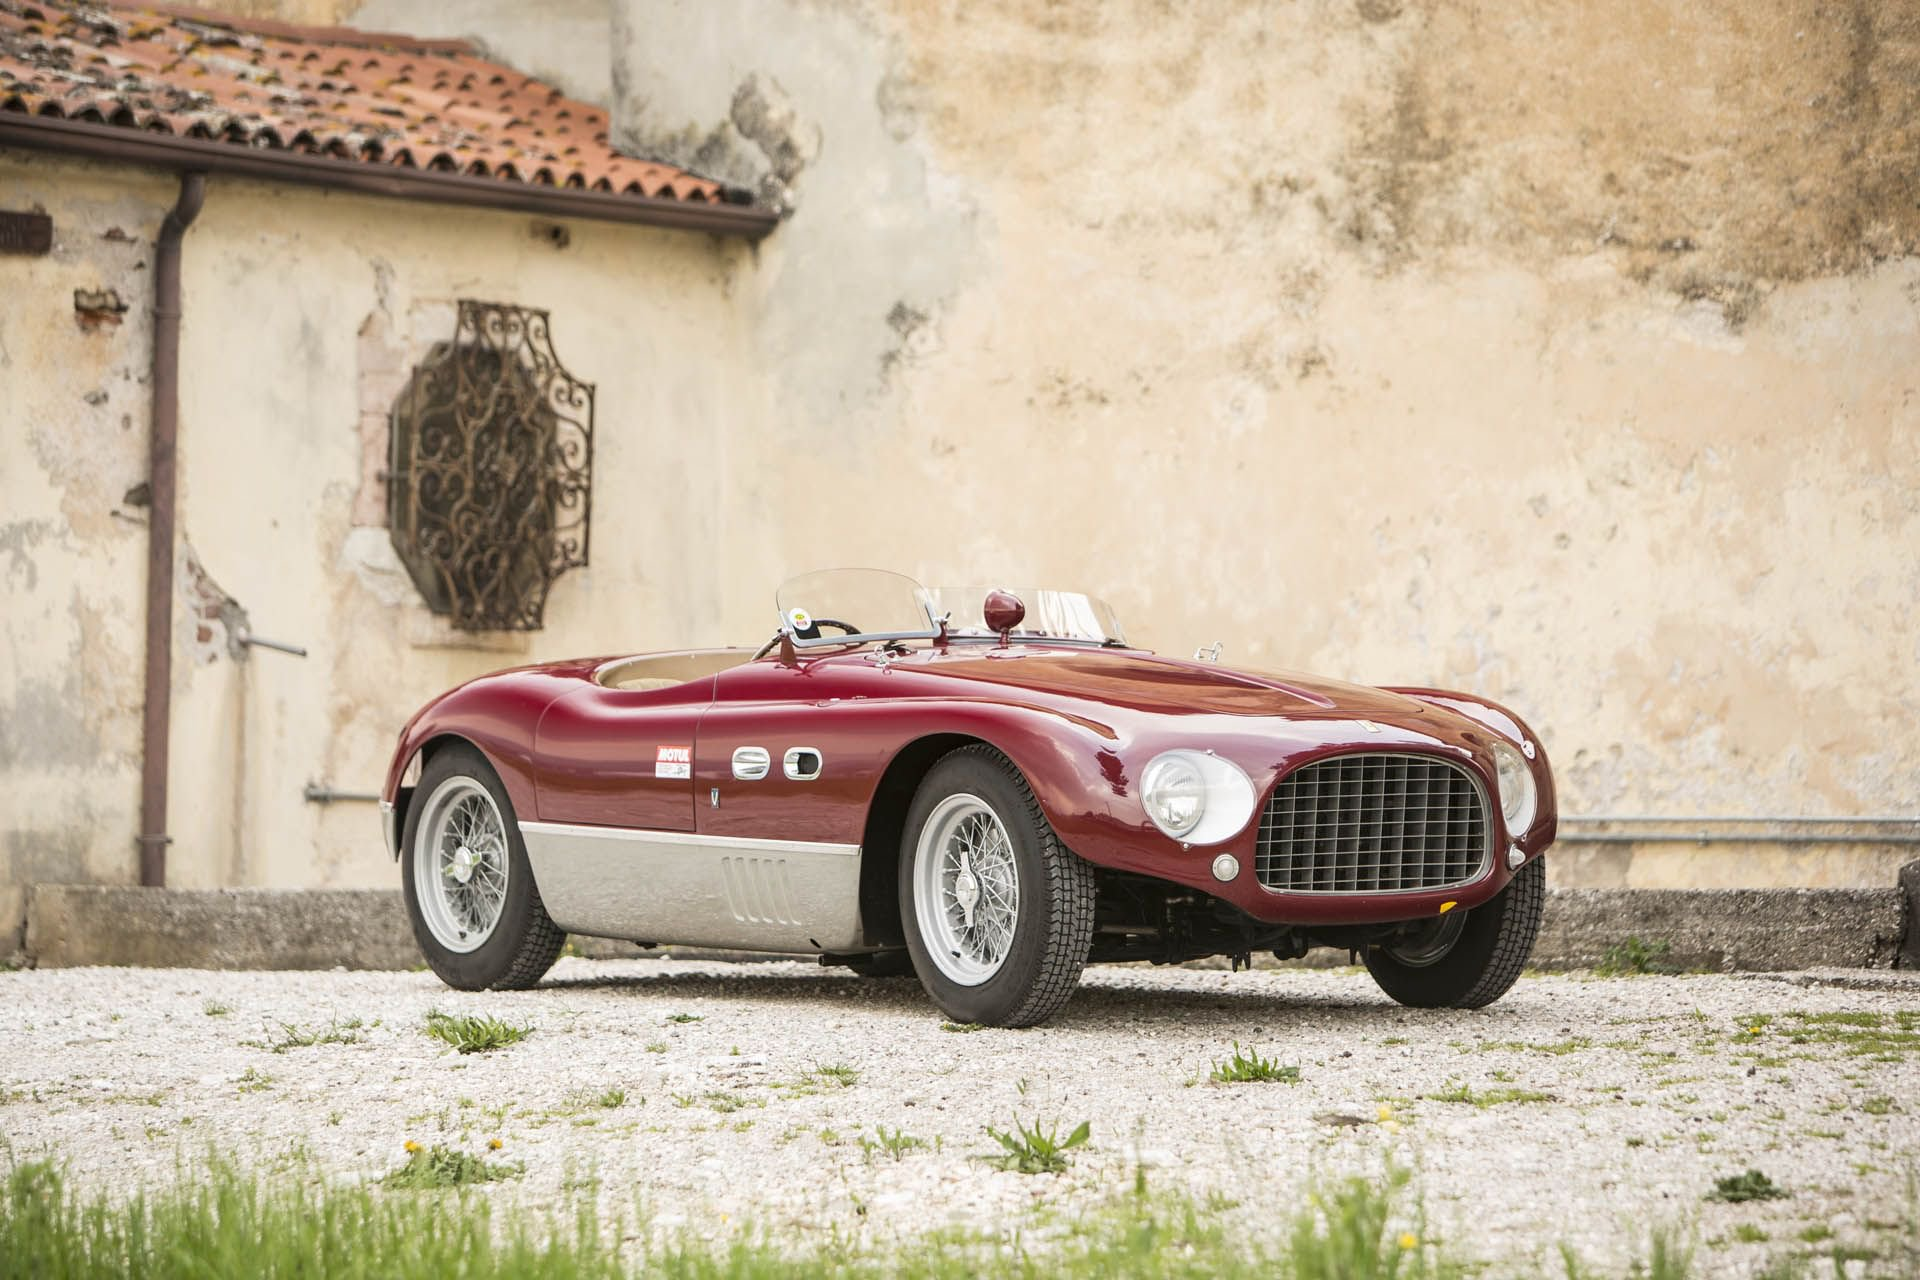 The auction house Bonhams will soon put up a unique 1953 Ferrari 625TF roadster for sale at between €4.5M and €6.5M